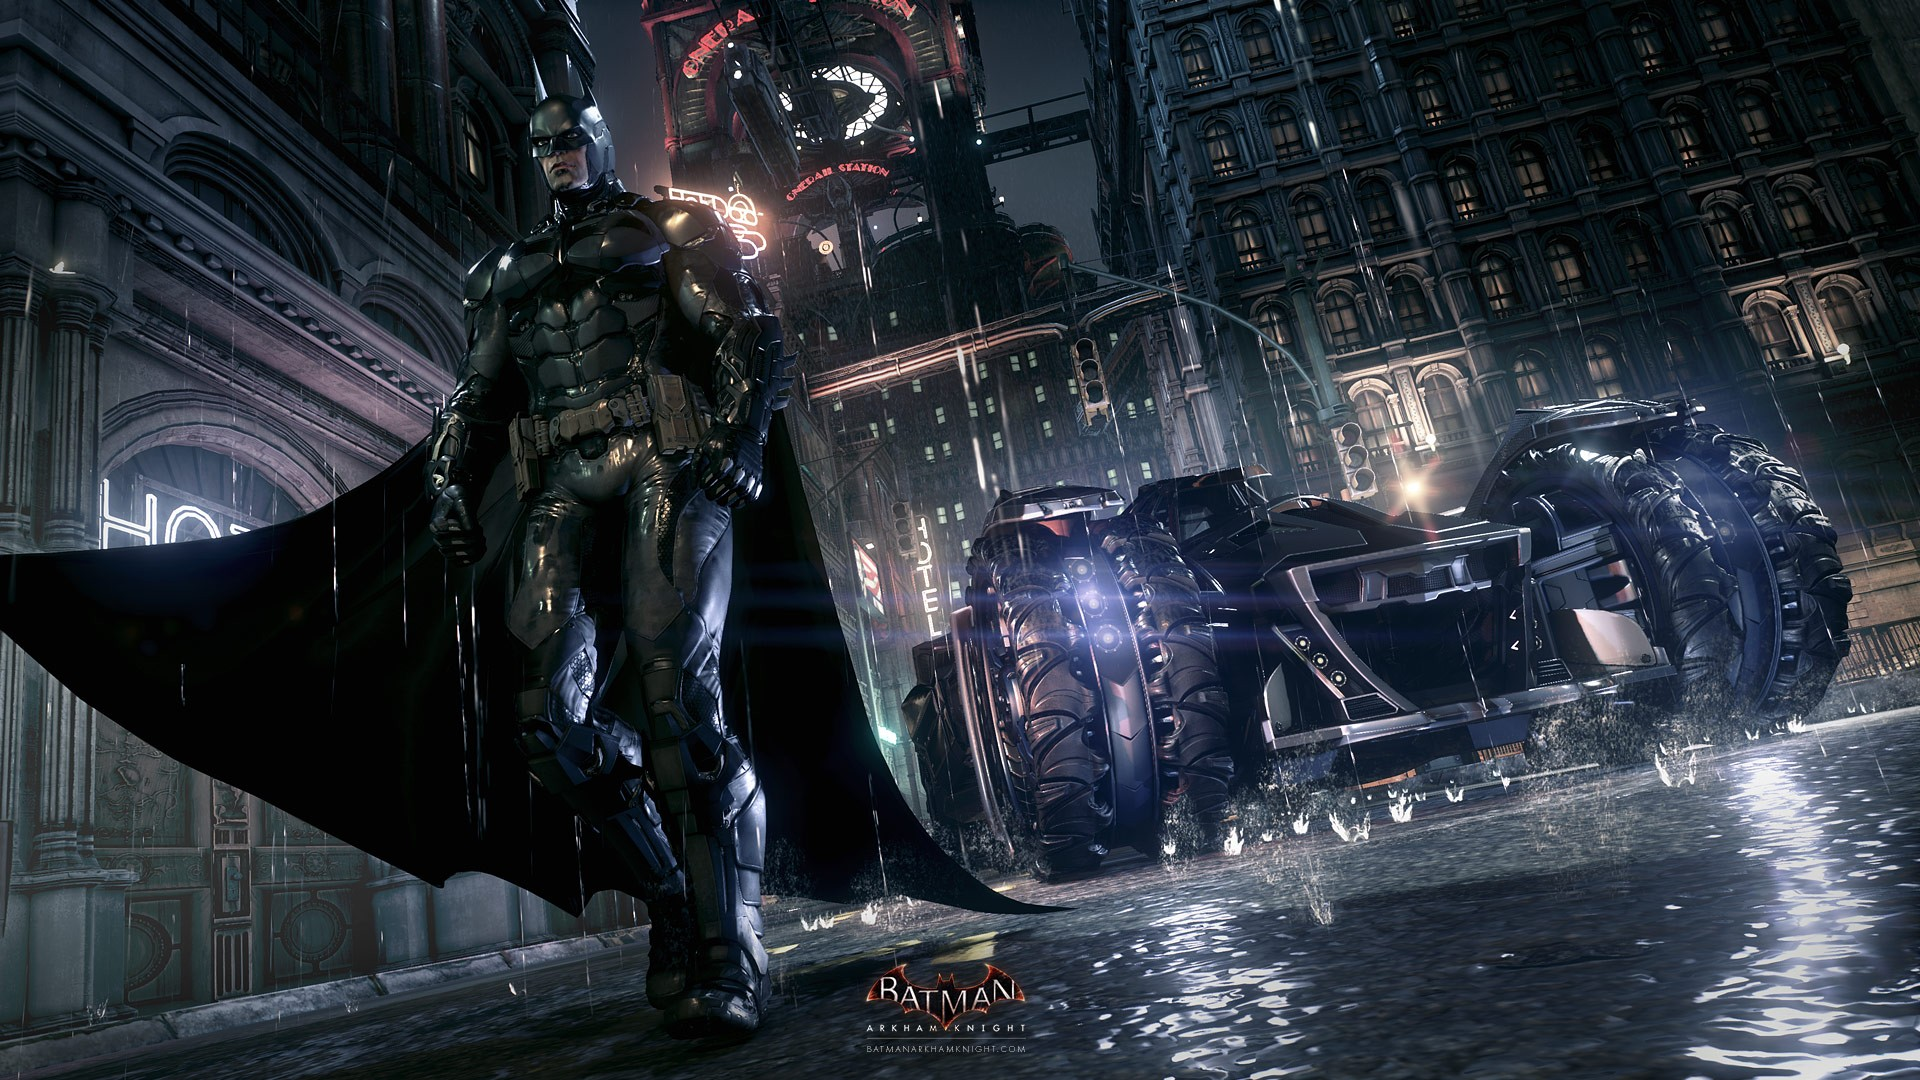 Batman: Arkham Knight (Рыцарь Аркхема)